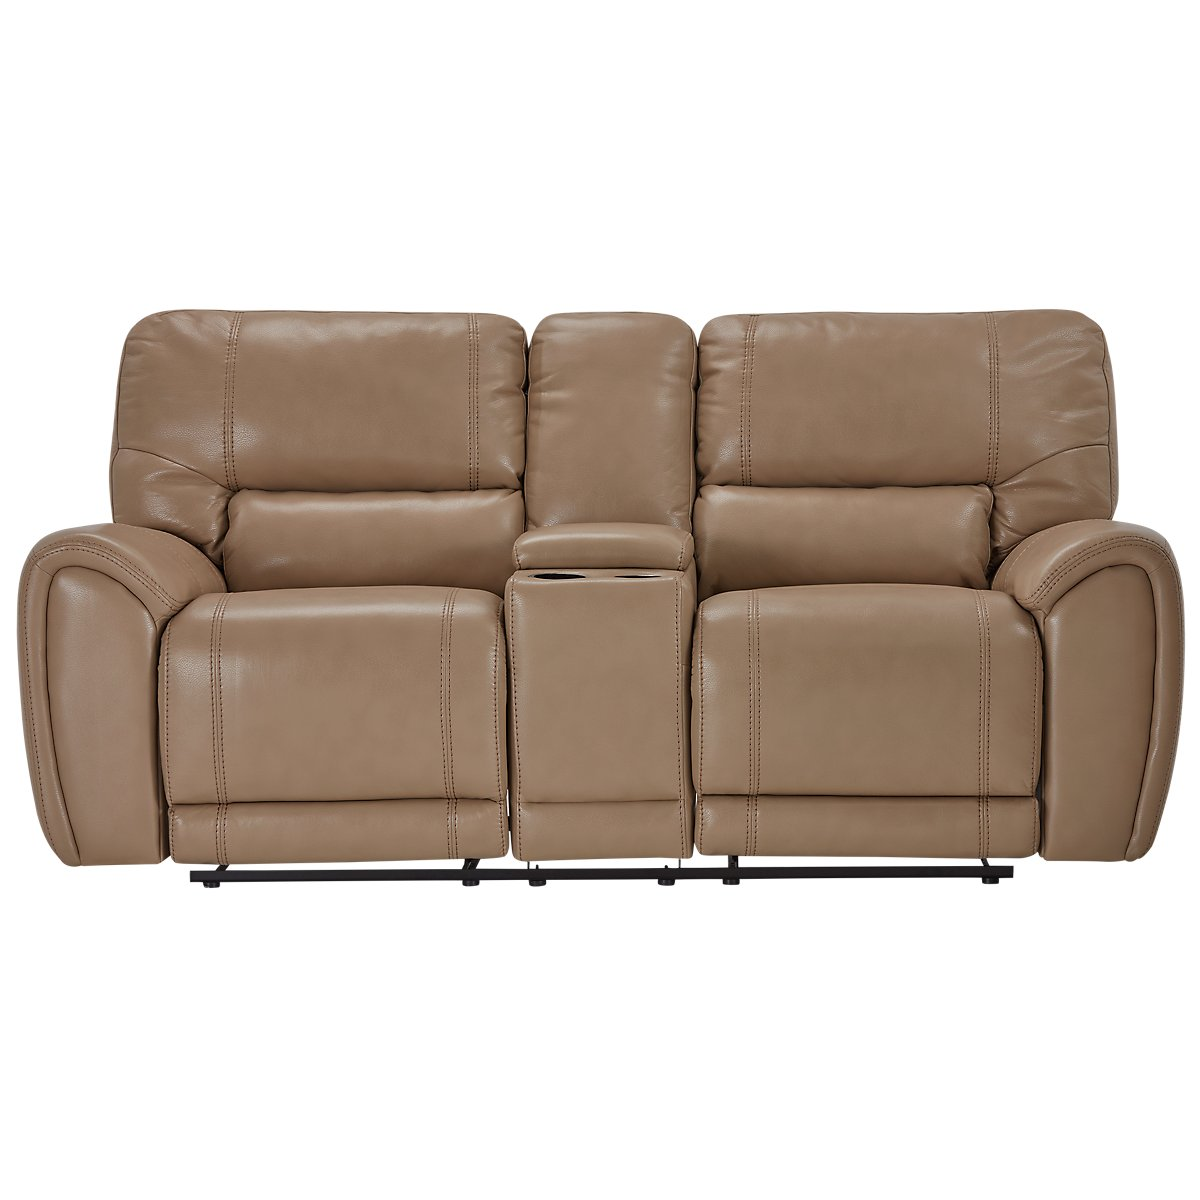 City Furniture: Bailey Taupe Microfiber Reclining Console